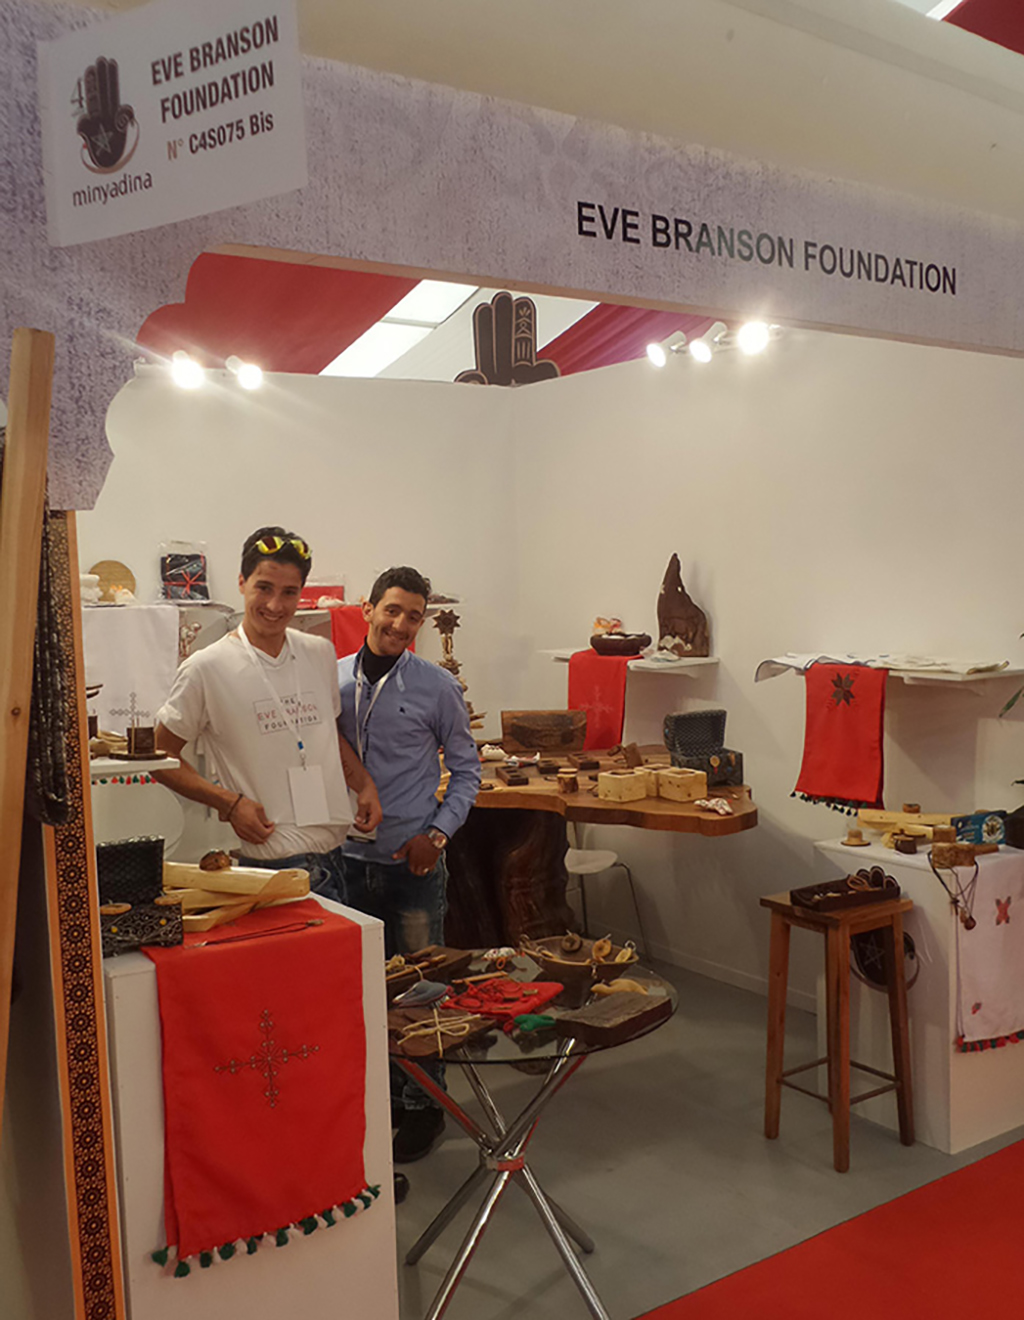 The Eve Branson Foundation booth at the Minyadina craft market